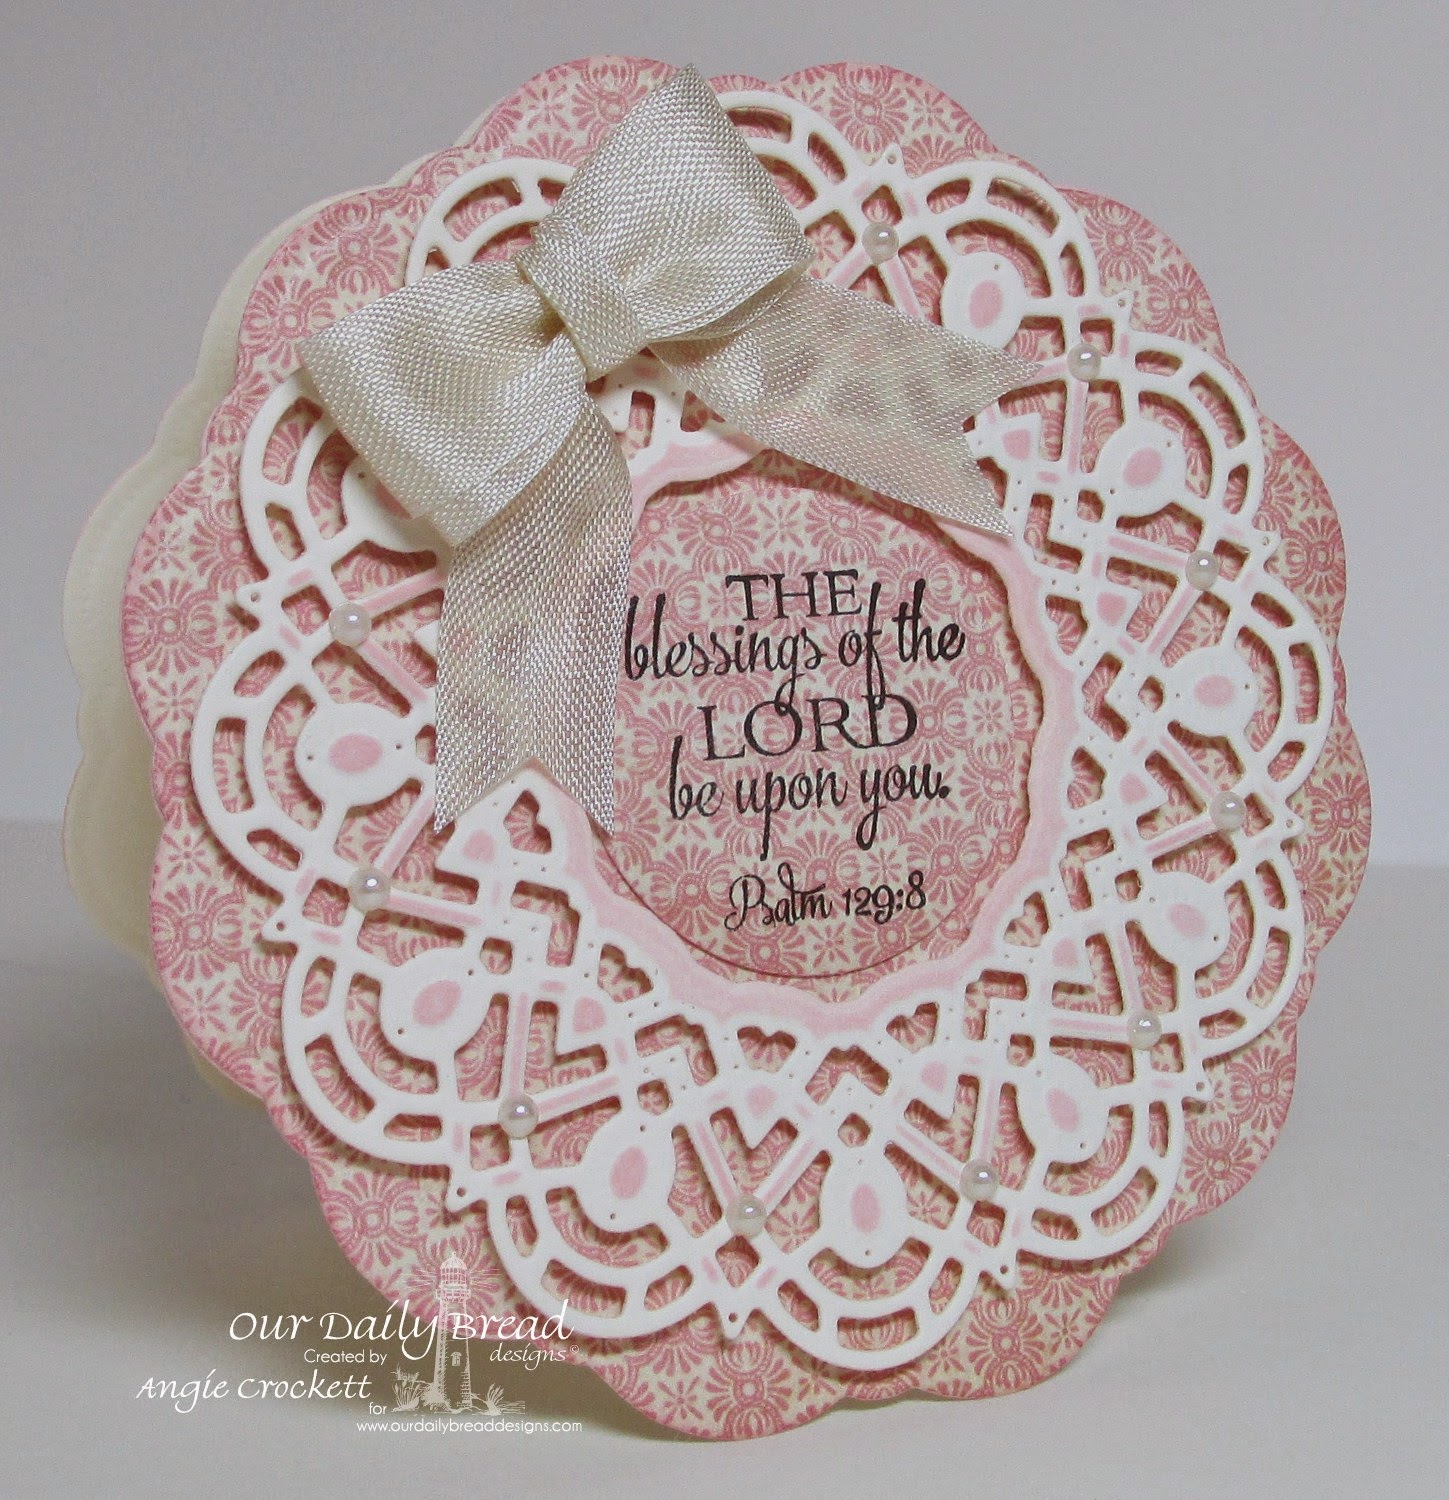 ODBD Custom Doily Di Set, Doily Blessings, Card Designer Angie Crockett